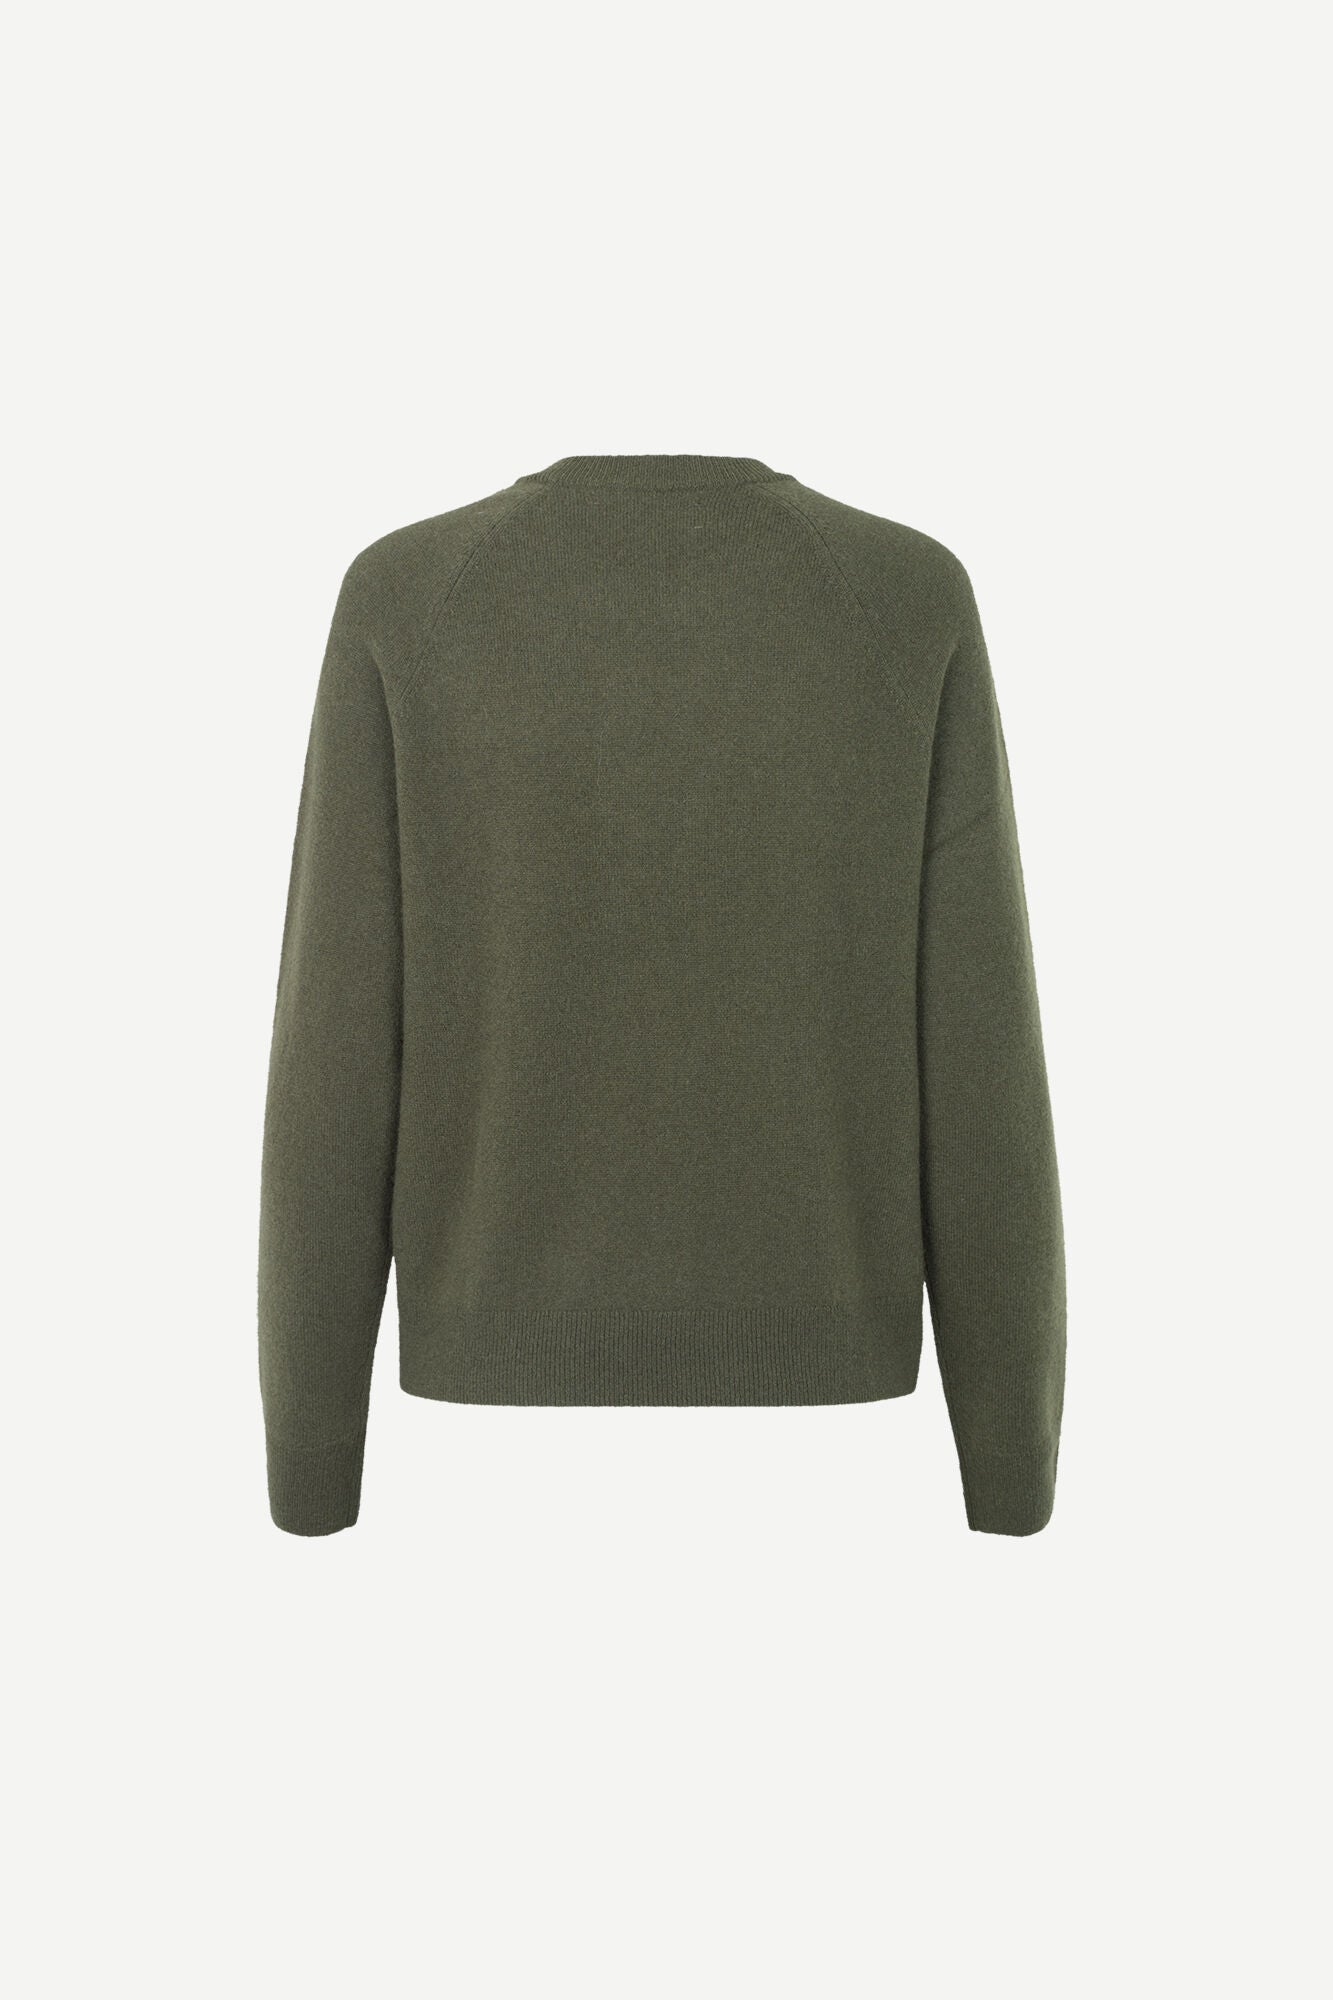 PURE CASHMERE CREW NECK IN DARK OLIVE